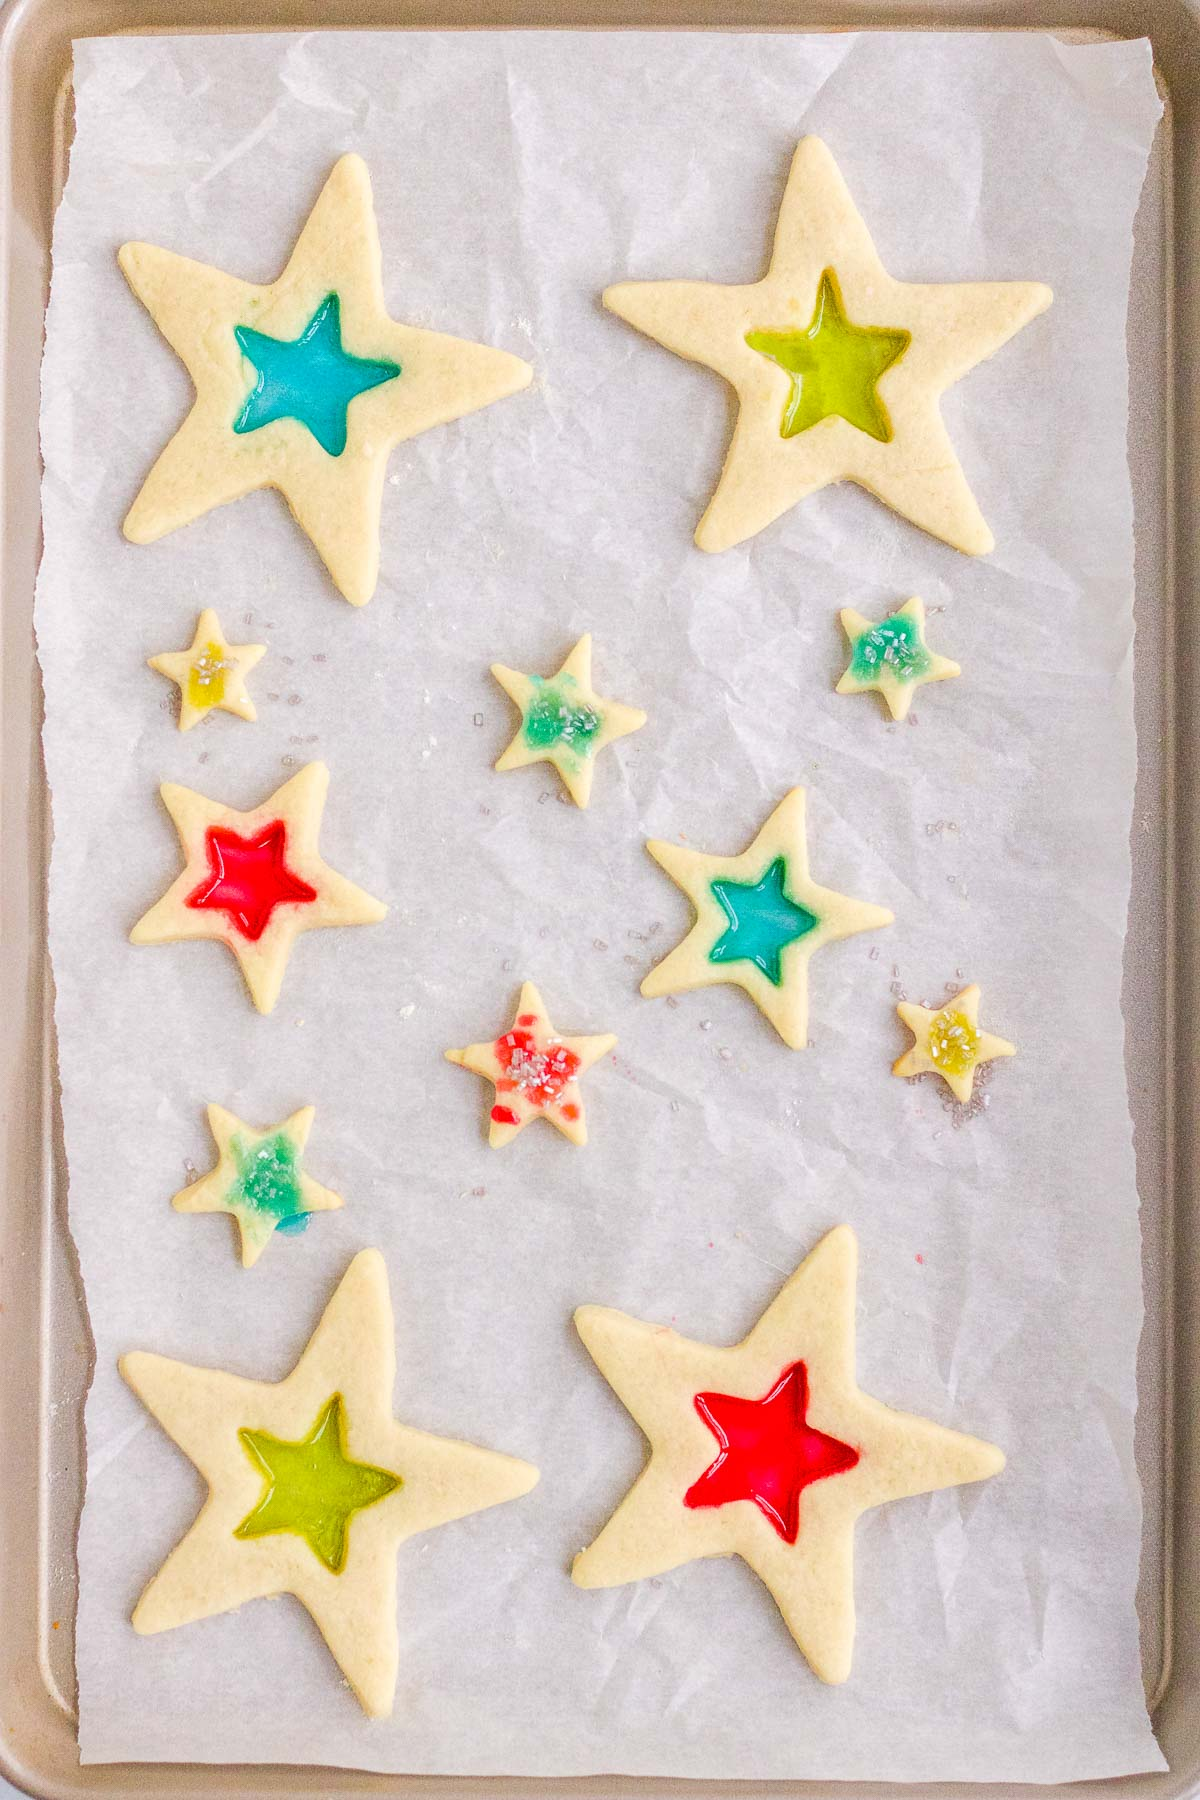 stained glass cookies on a baking sheet